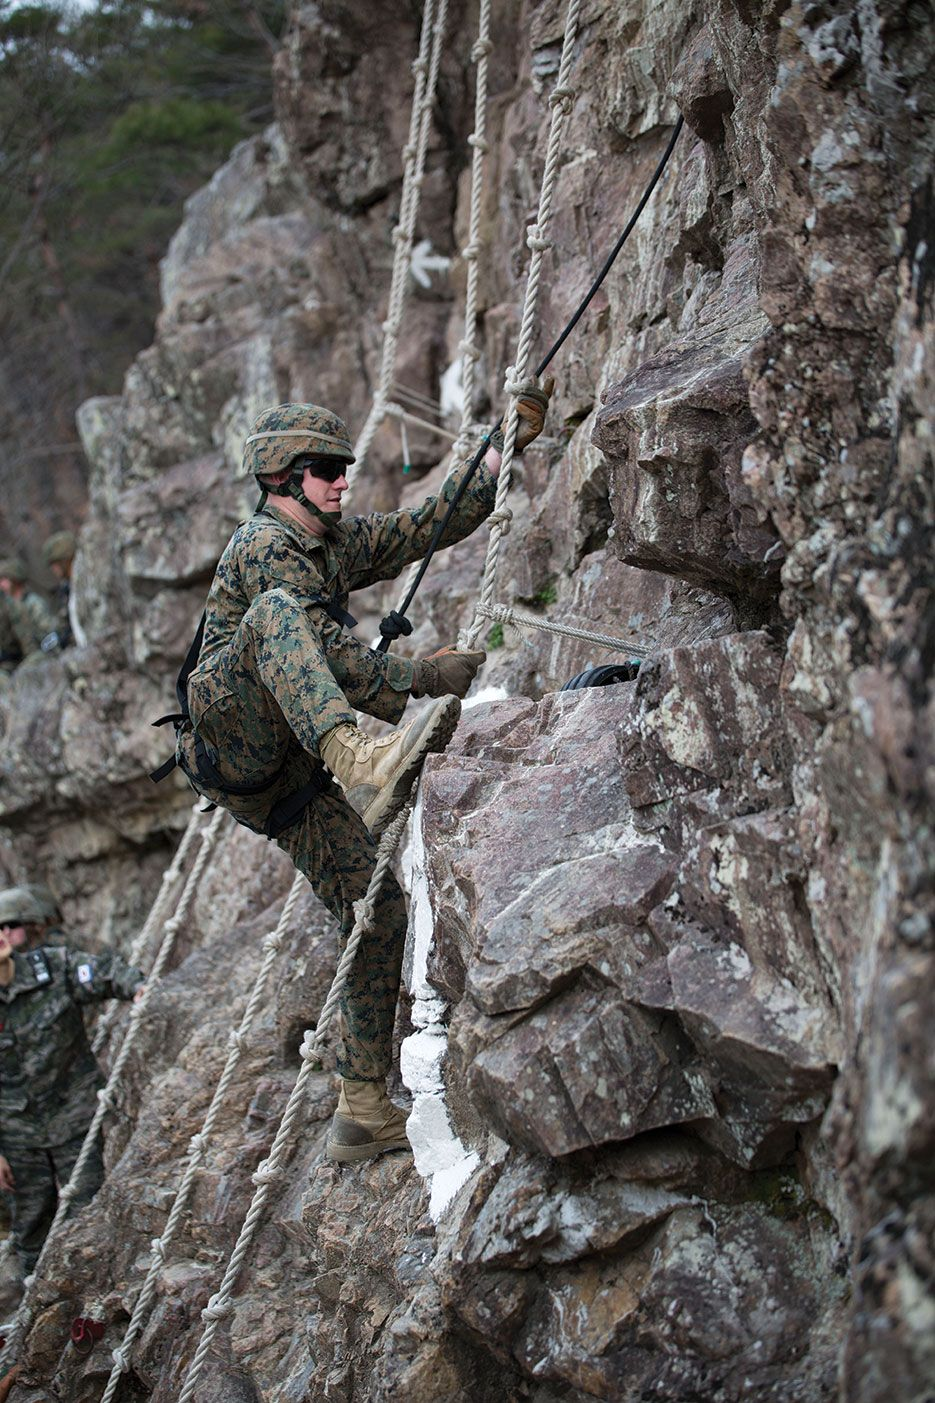 U S Marine Corps Field Radio Operator Climbs Mountainside During Mountain Warfare Training Course As Part Of Marine Expeditionary Force Exercise Mefex 2014